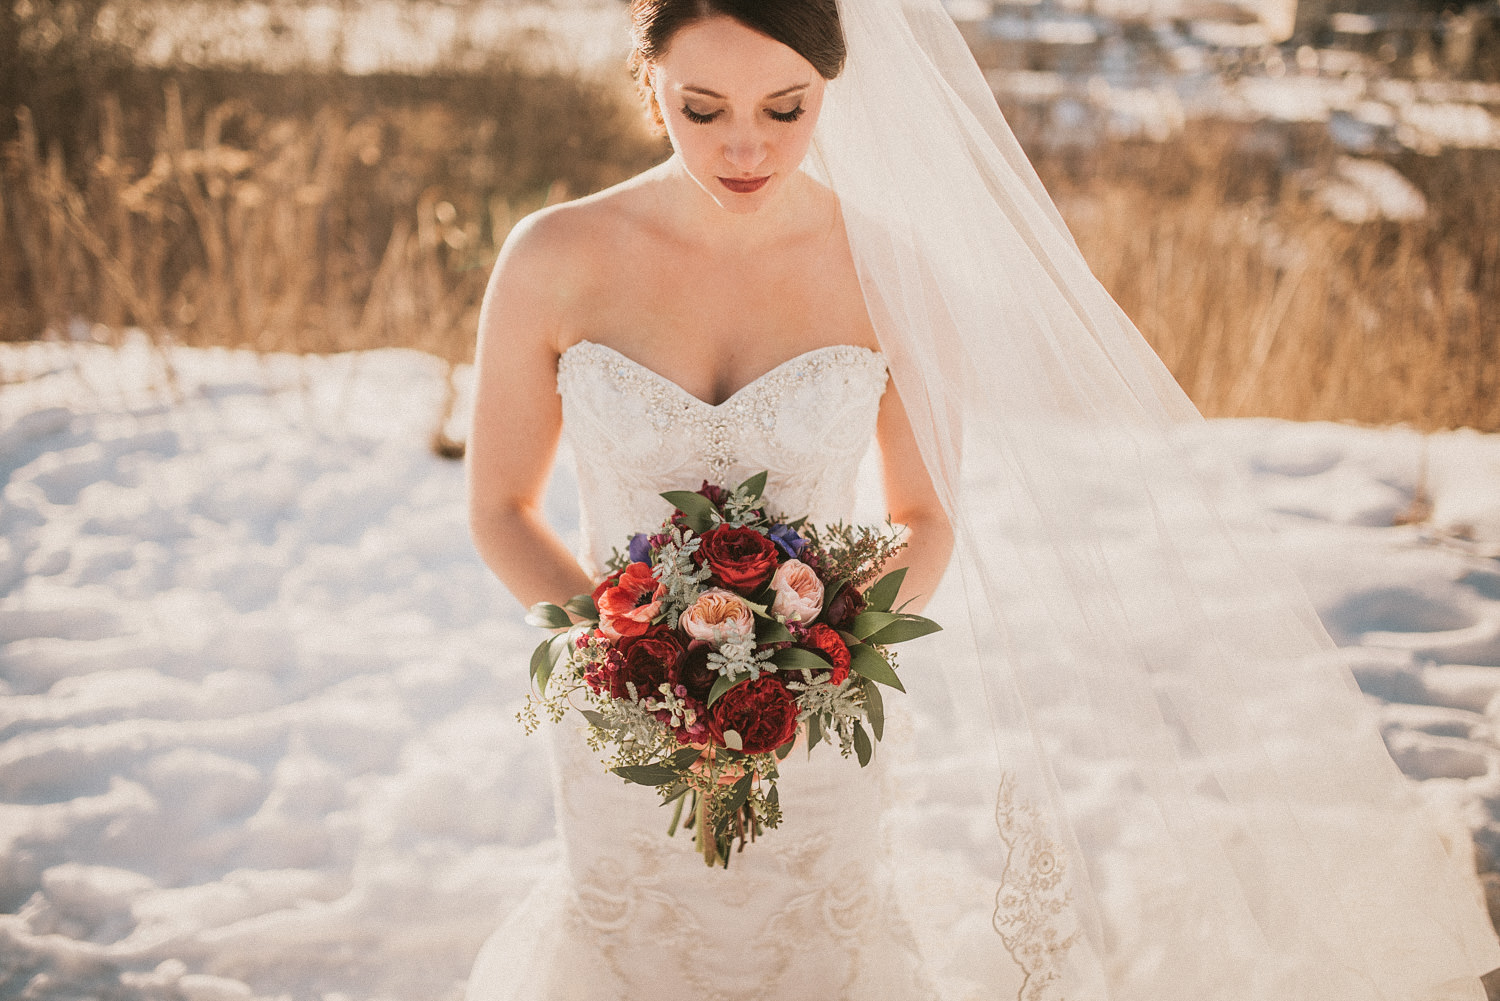 Emily + Joshua | West Michigan Winter Wedding – Blog Ryan Inman ...